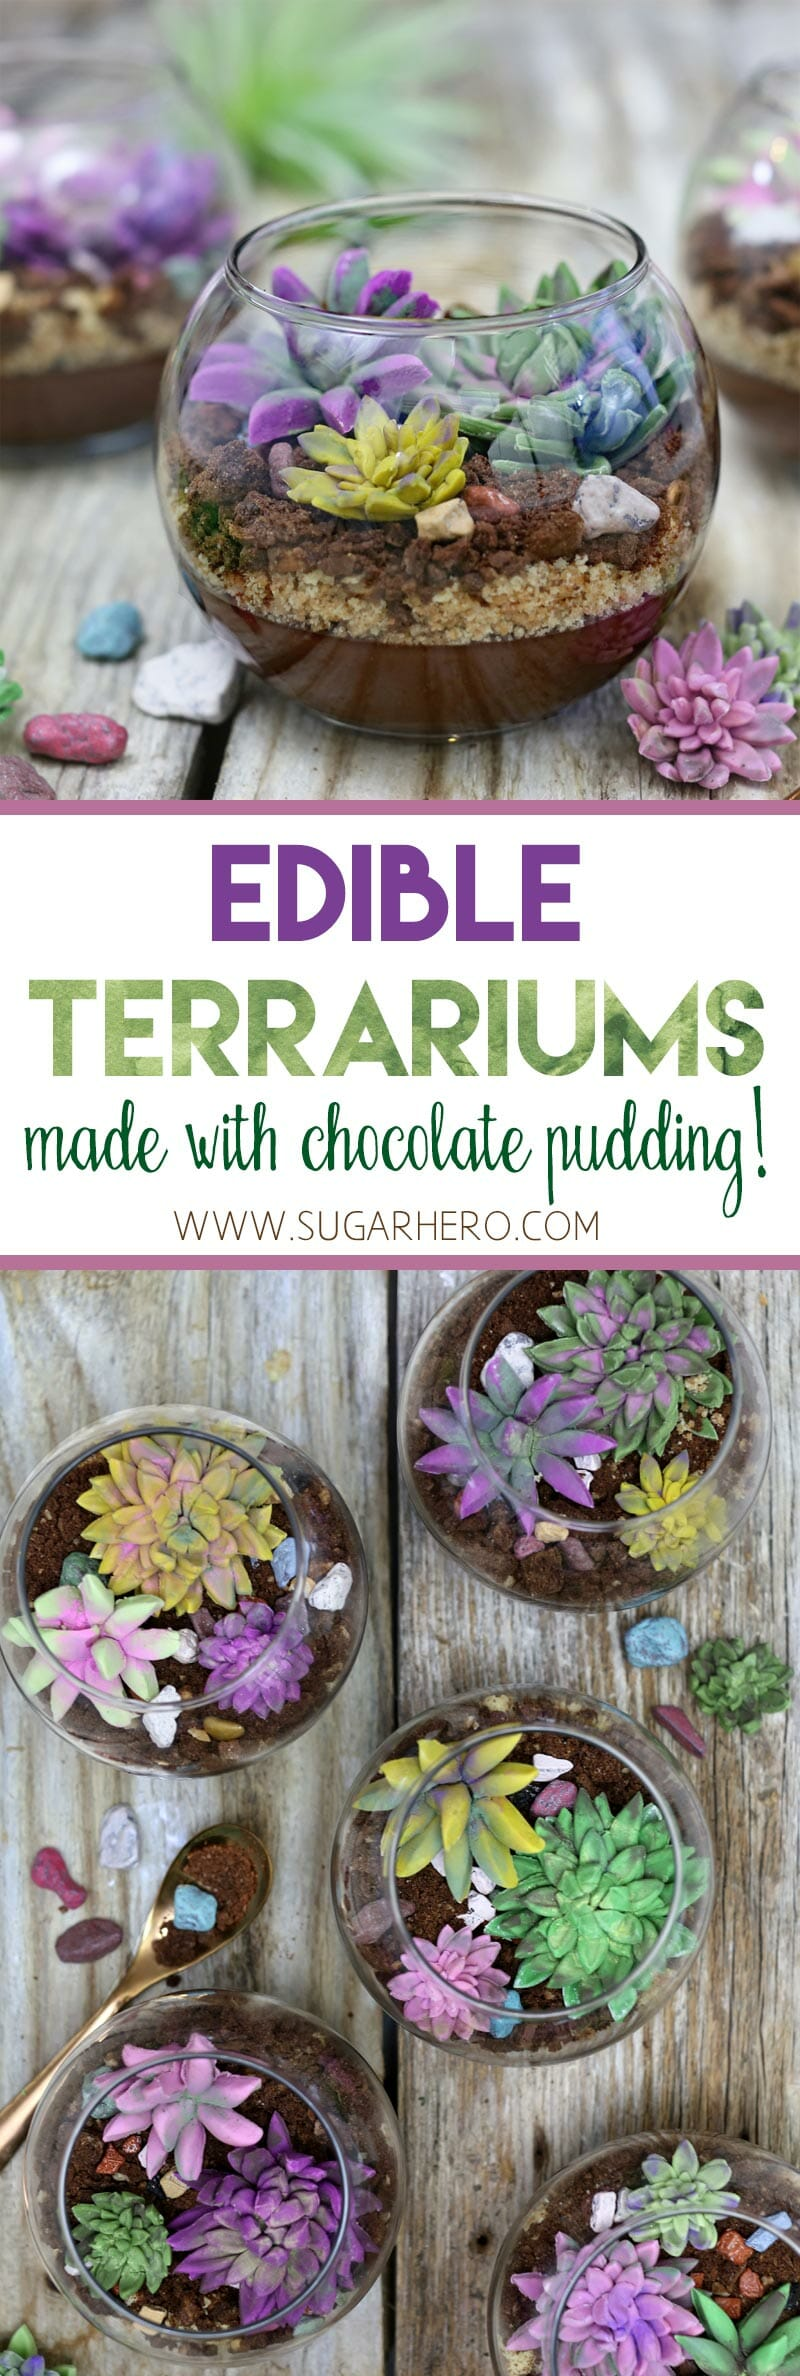 Edible Terrariums with Chocolate Pudding | From SugarHero.com